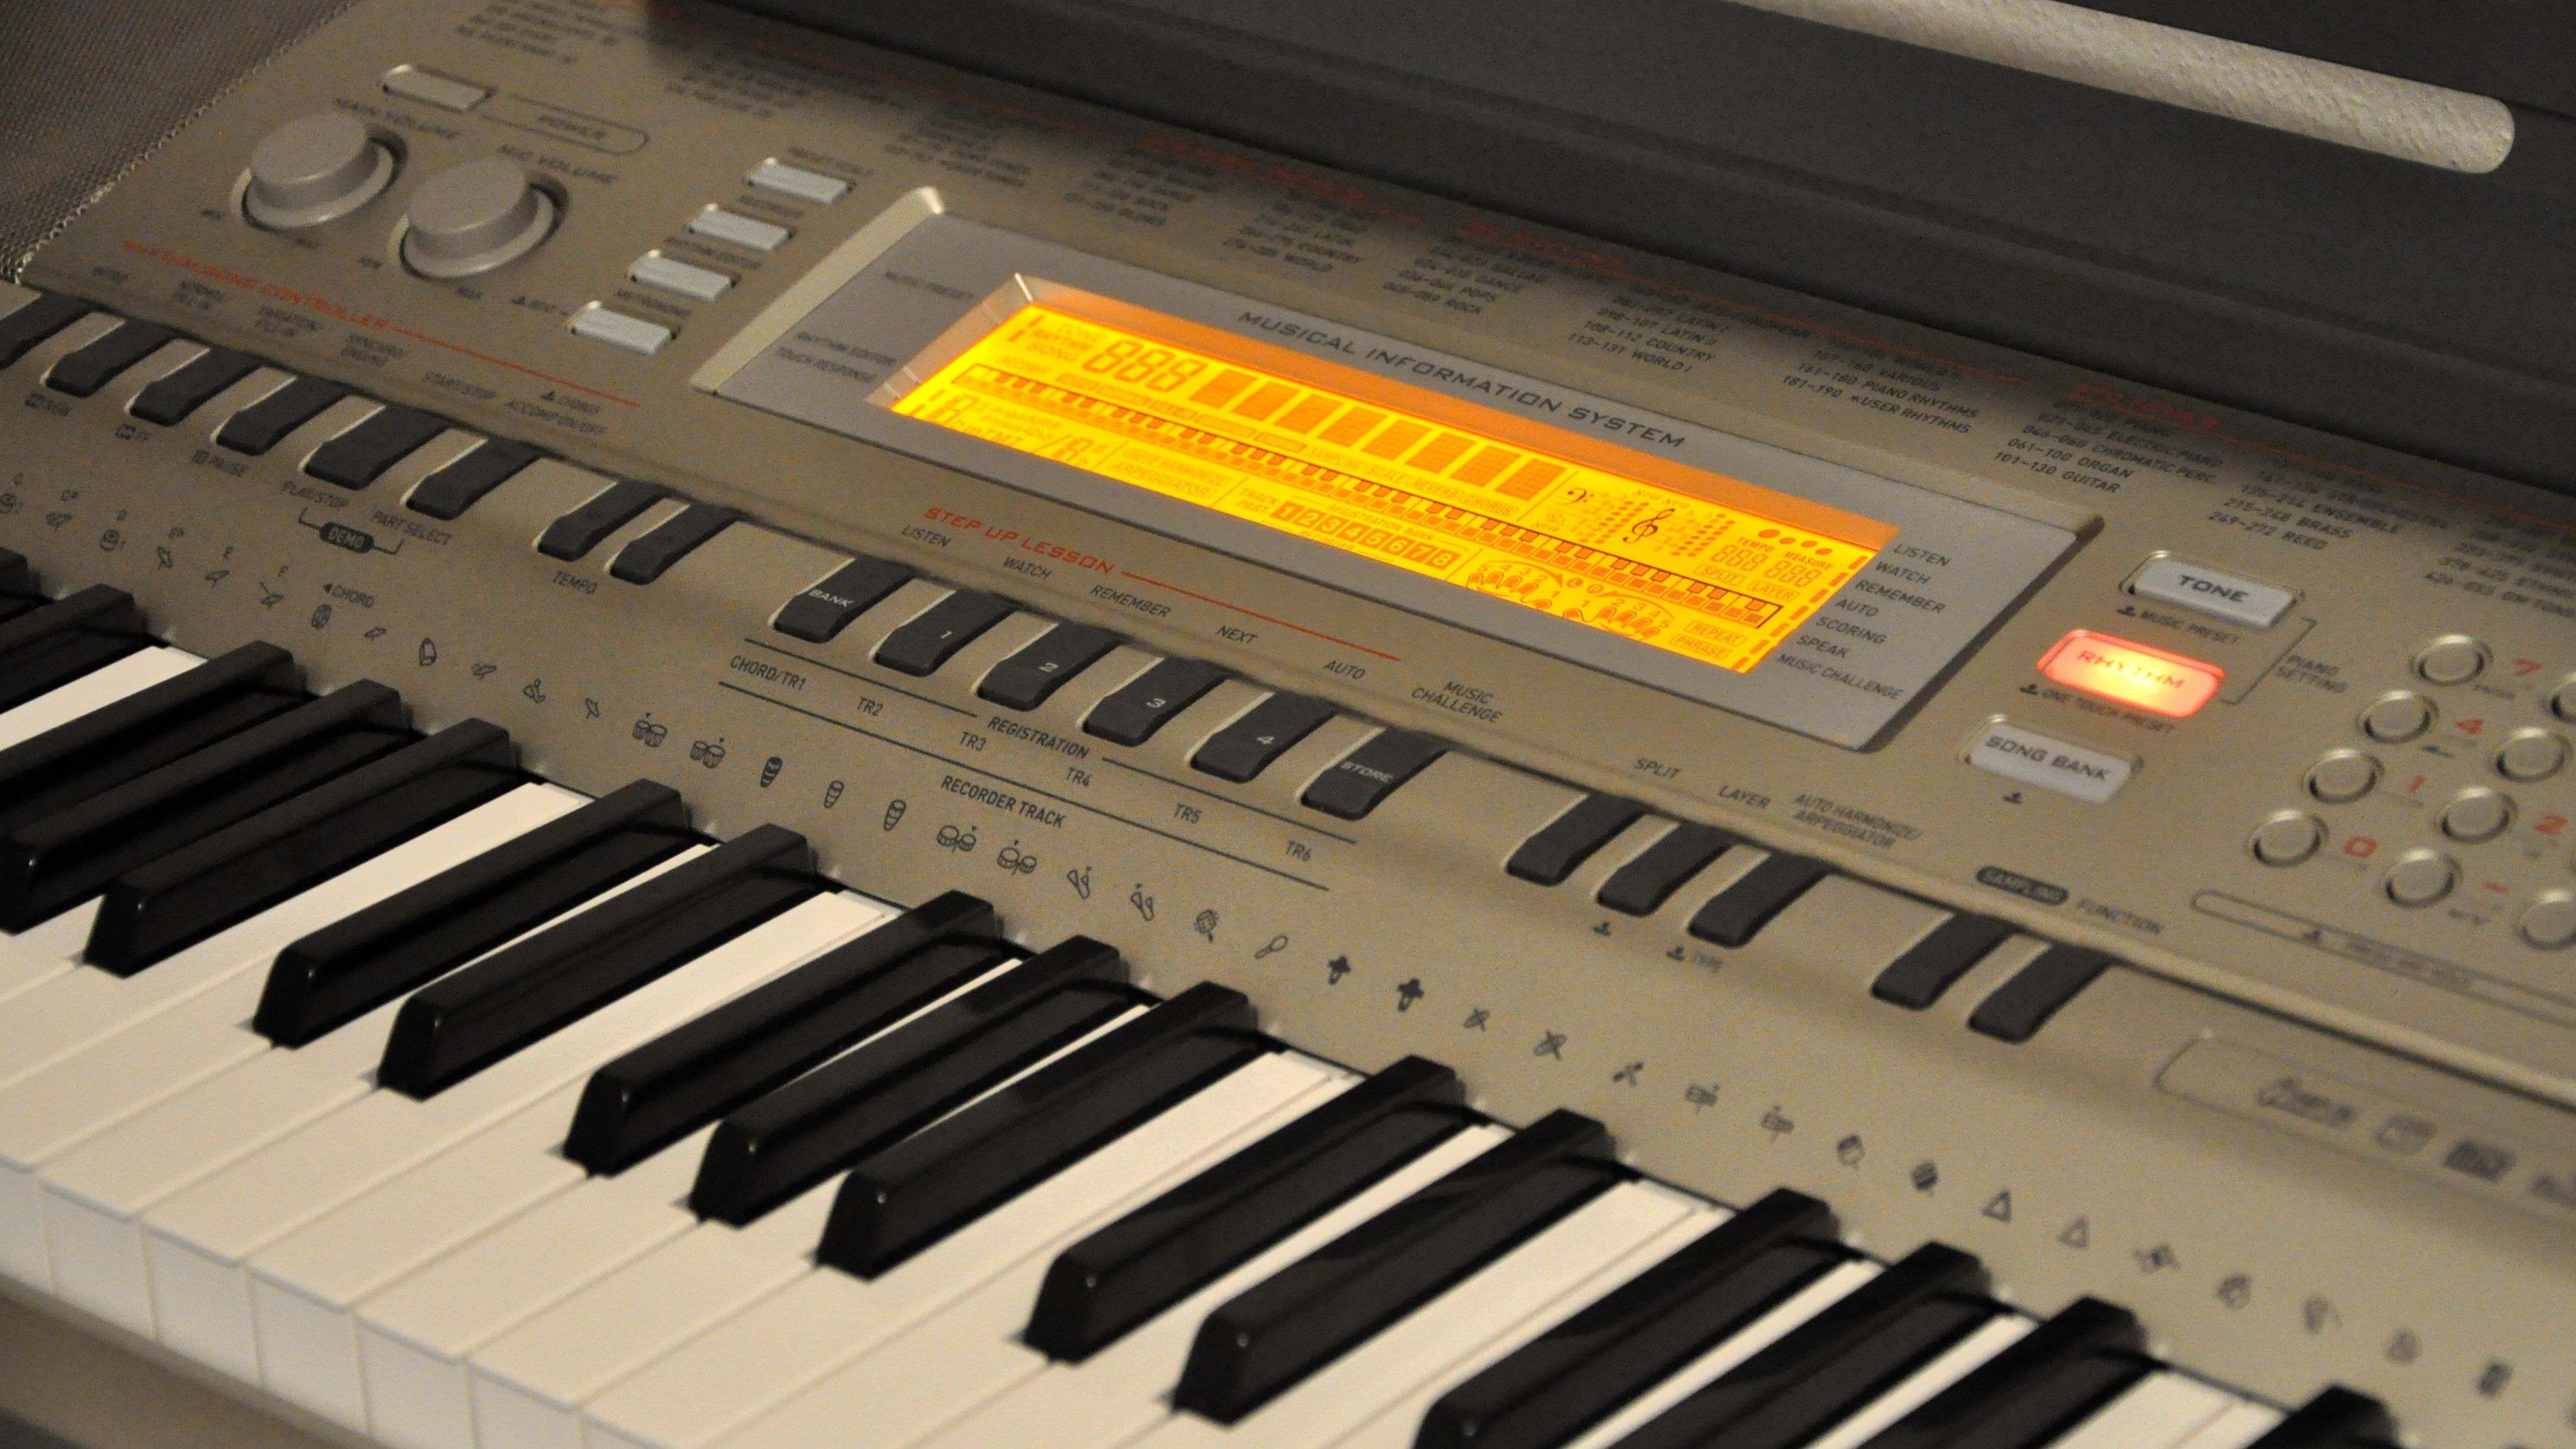 Review of the Casio WK-200 Keyboard